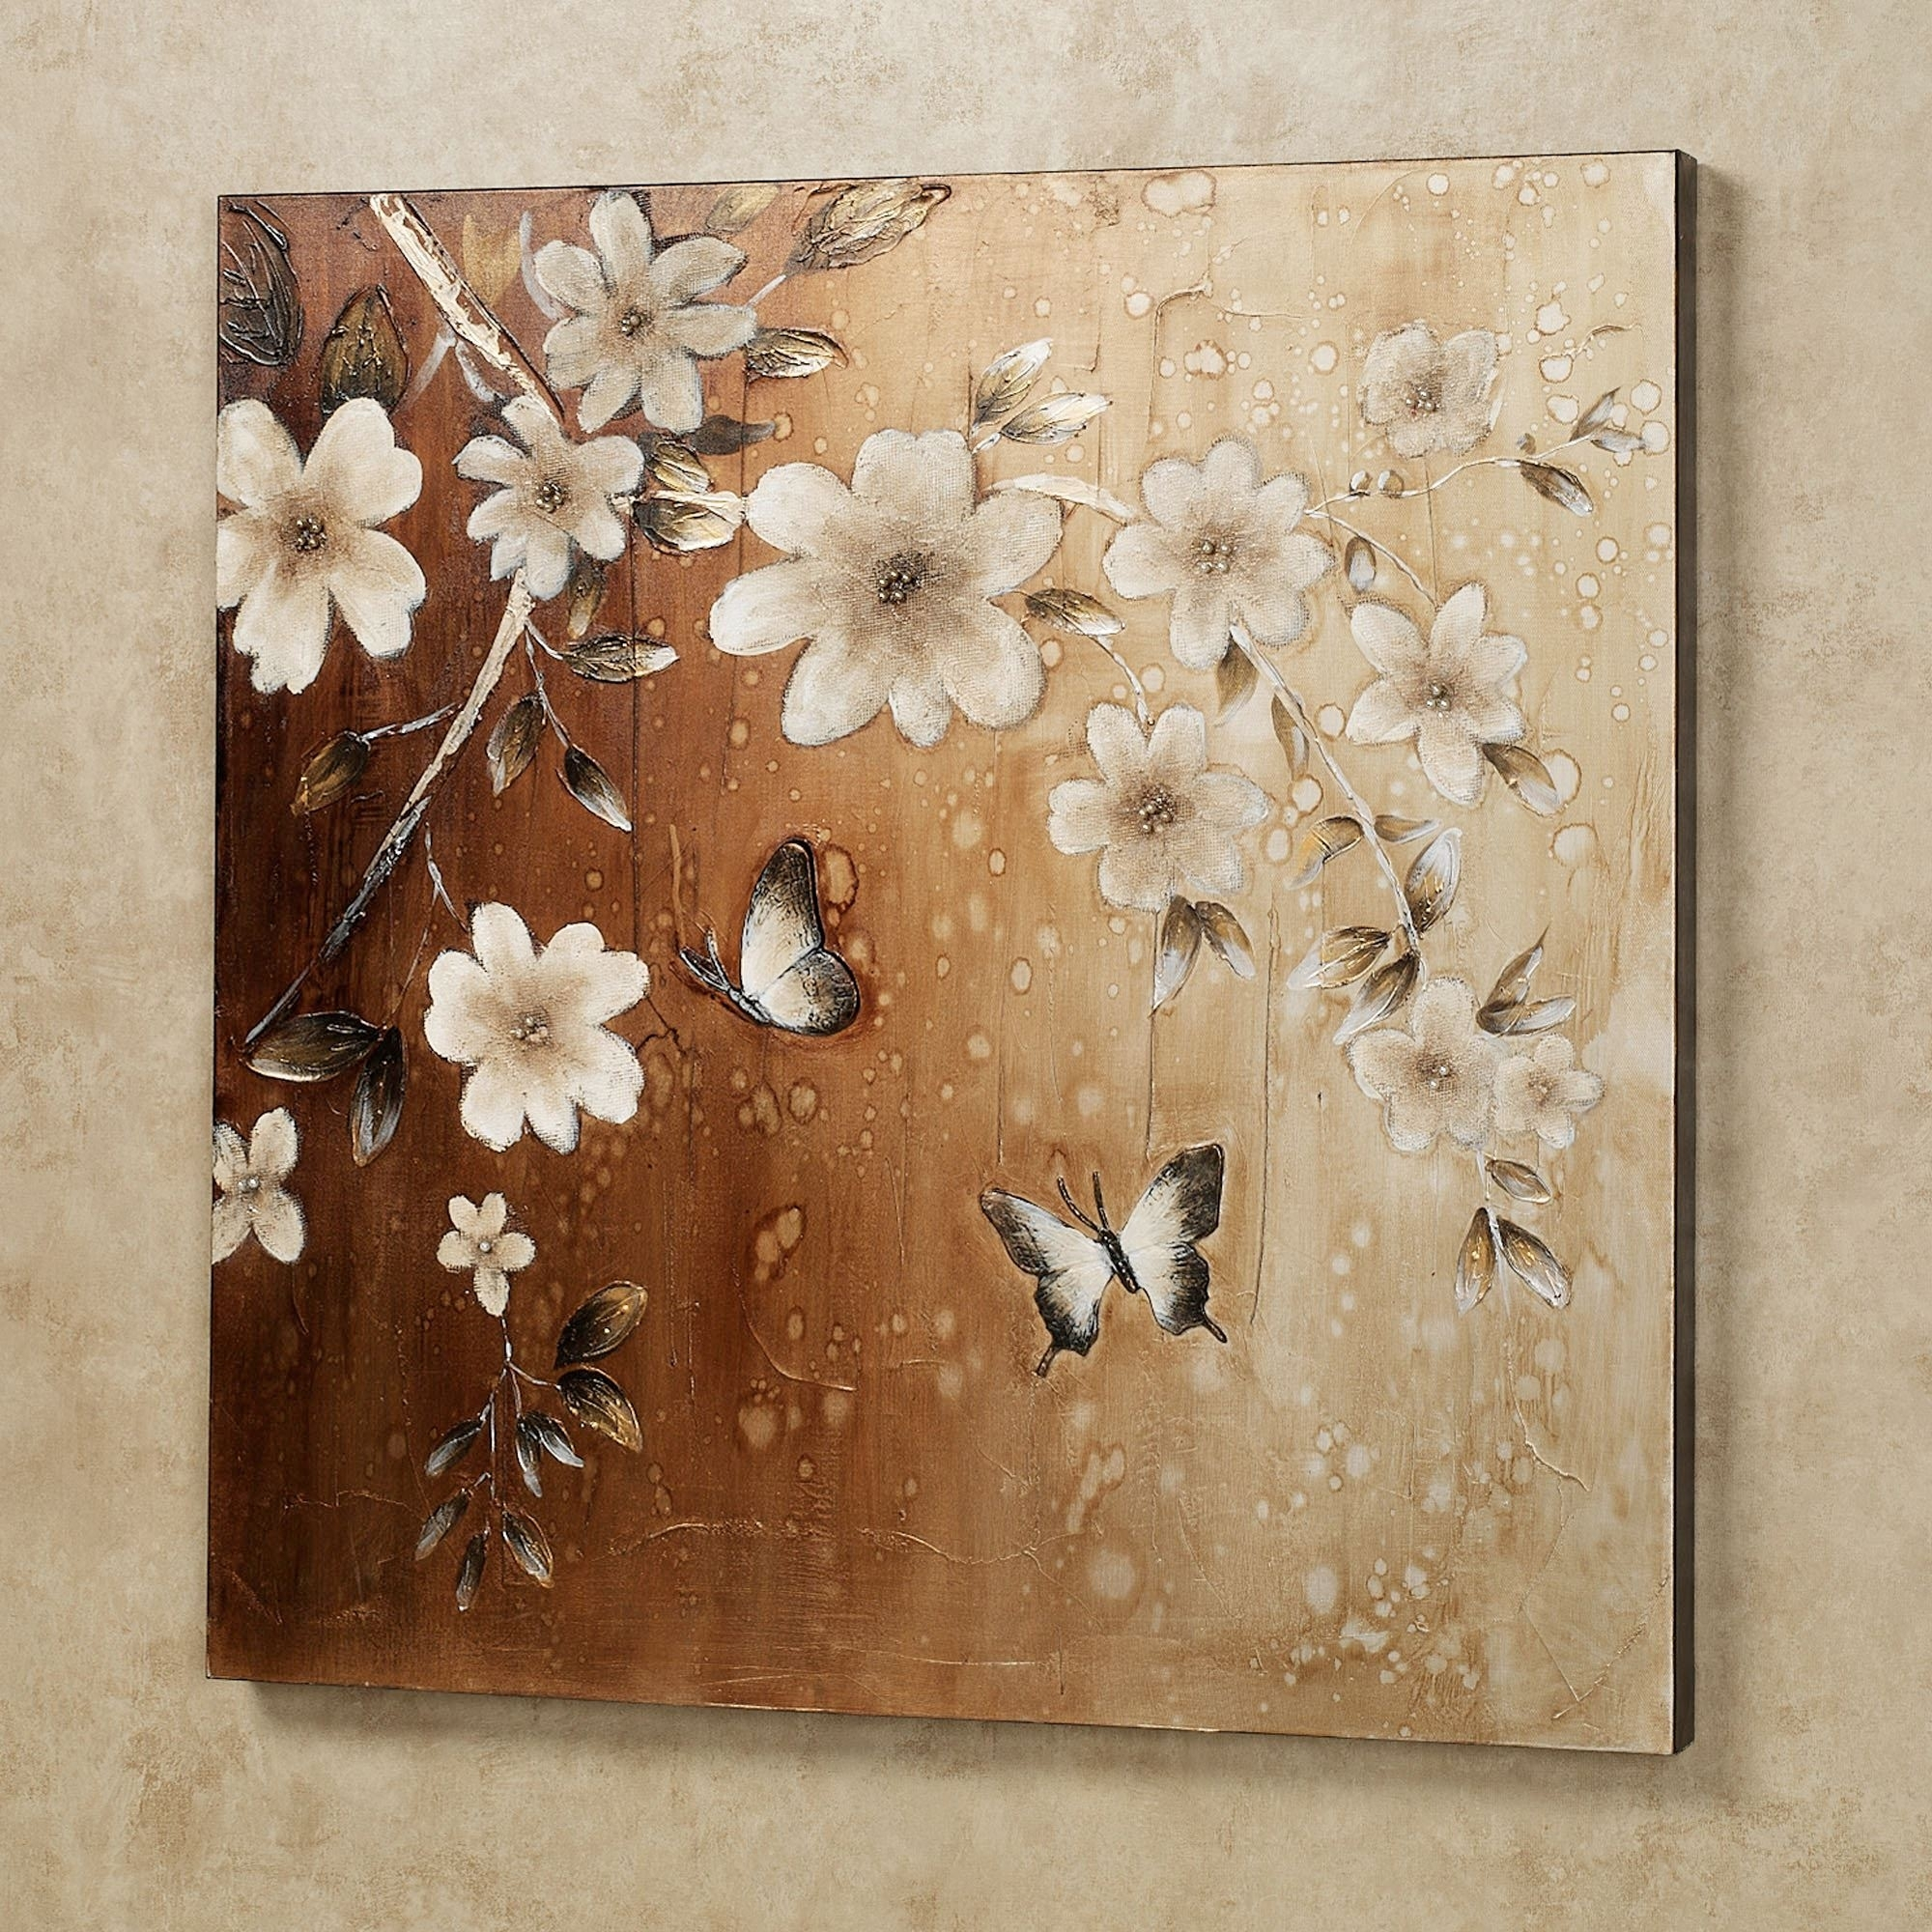 Midday Sun Butterfly Floral Canvas Wall Art Regarding Latest Floral Canvas Wall Art (View 14 of 20)